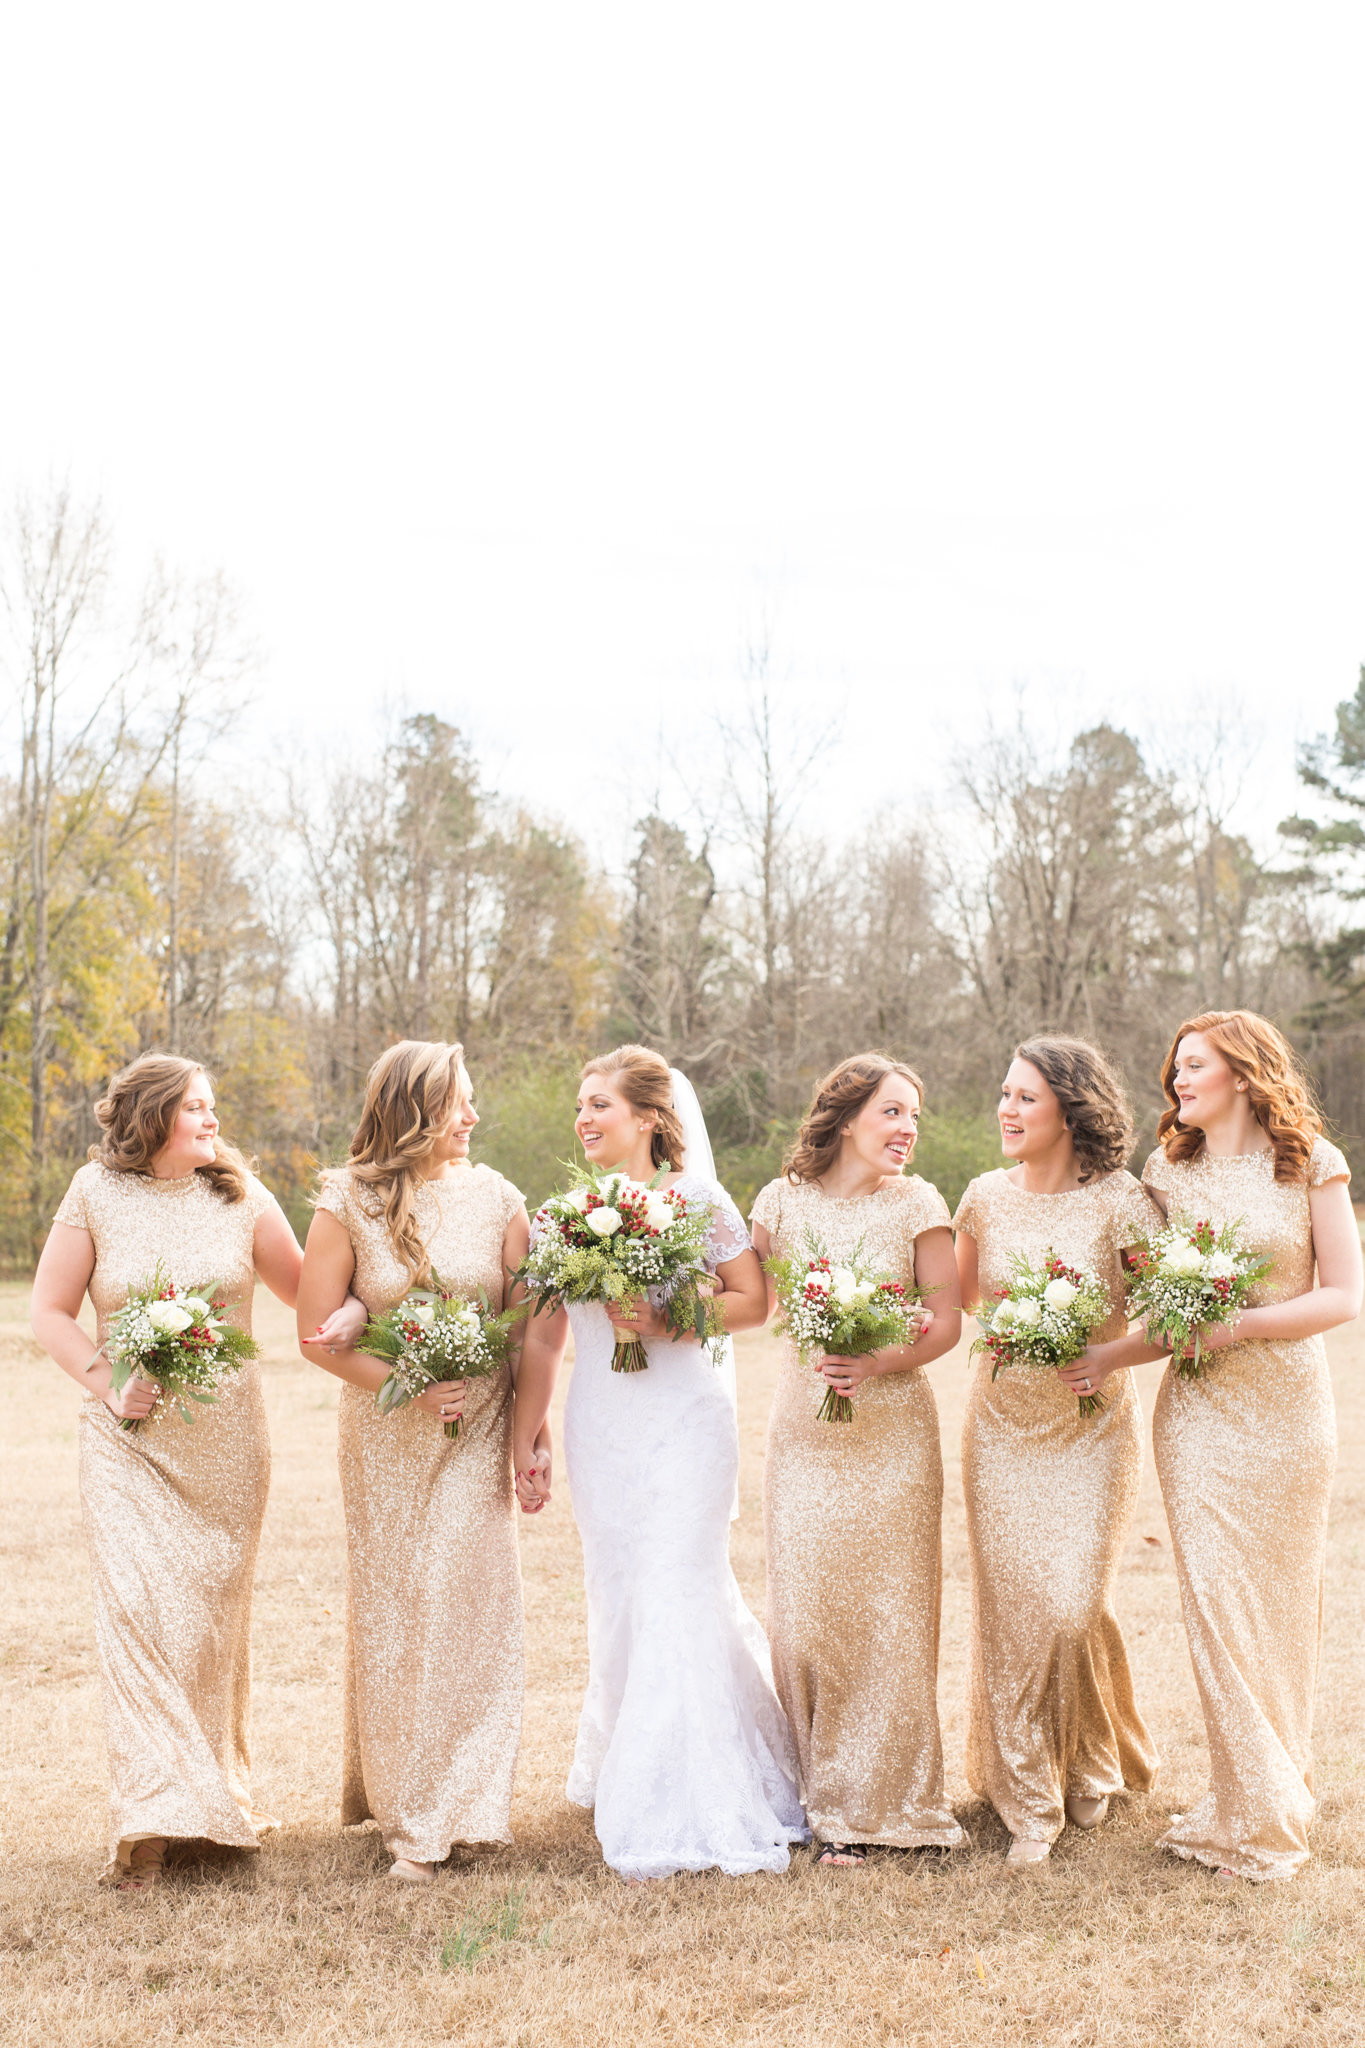 Gold Sequin Bridesmaids Dresses